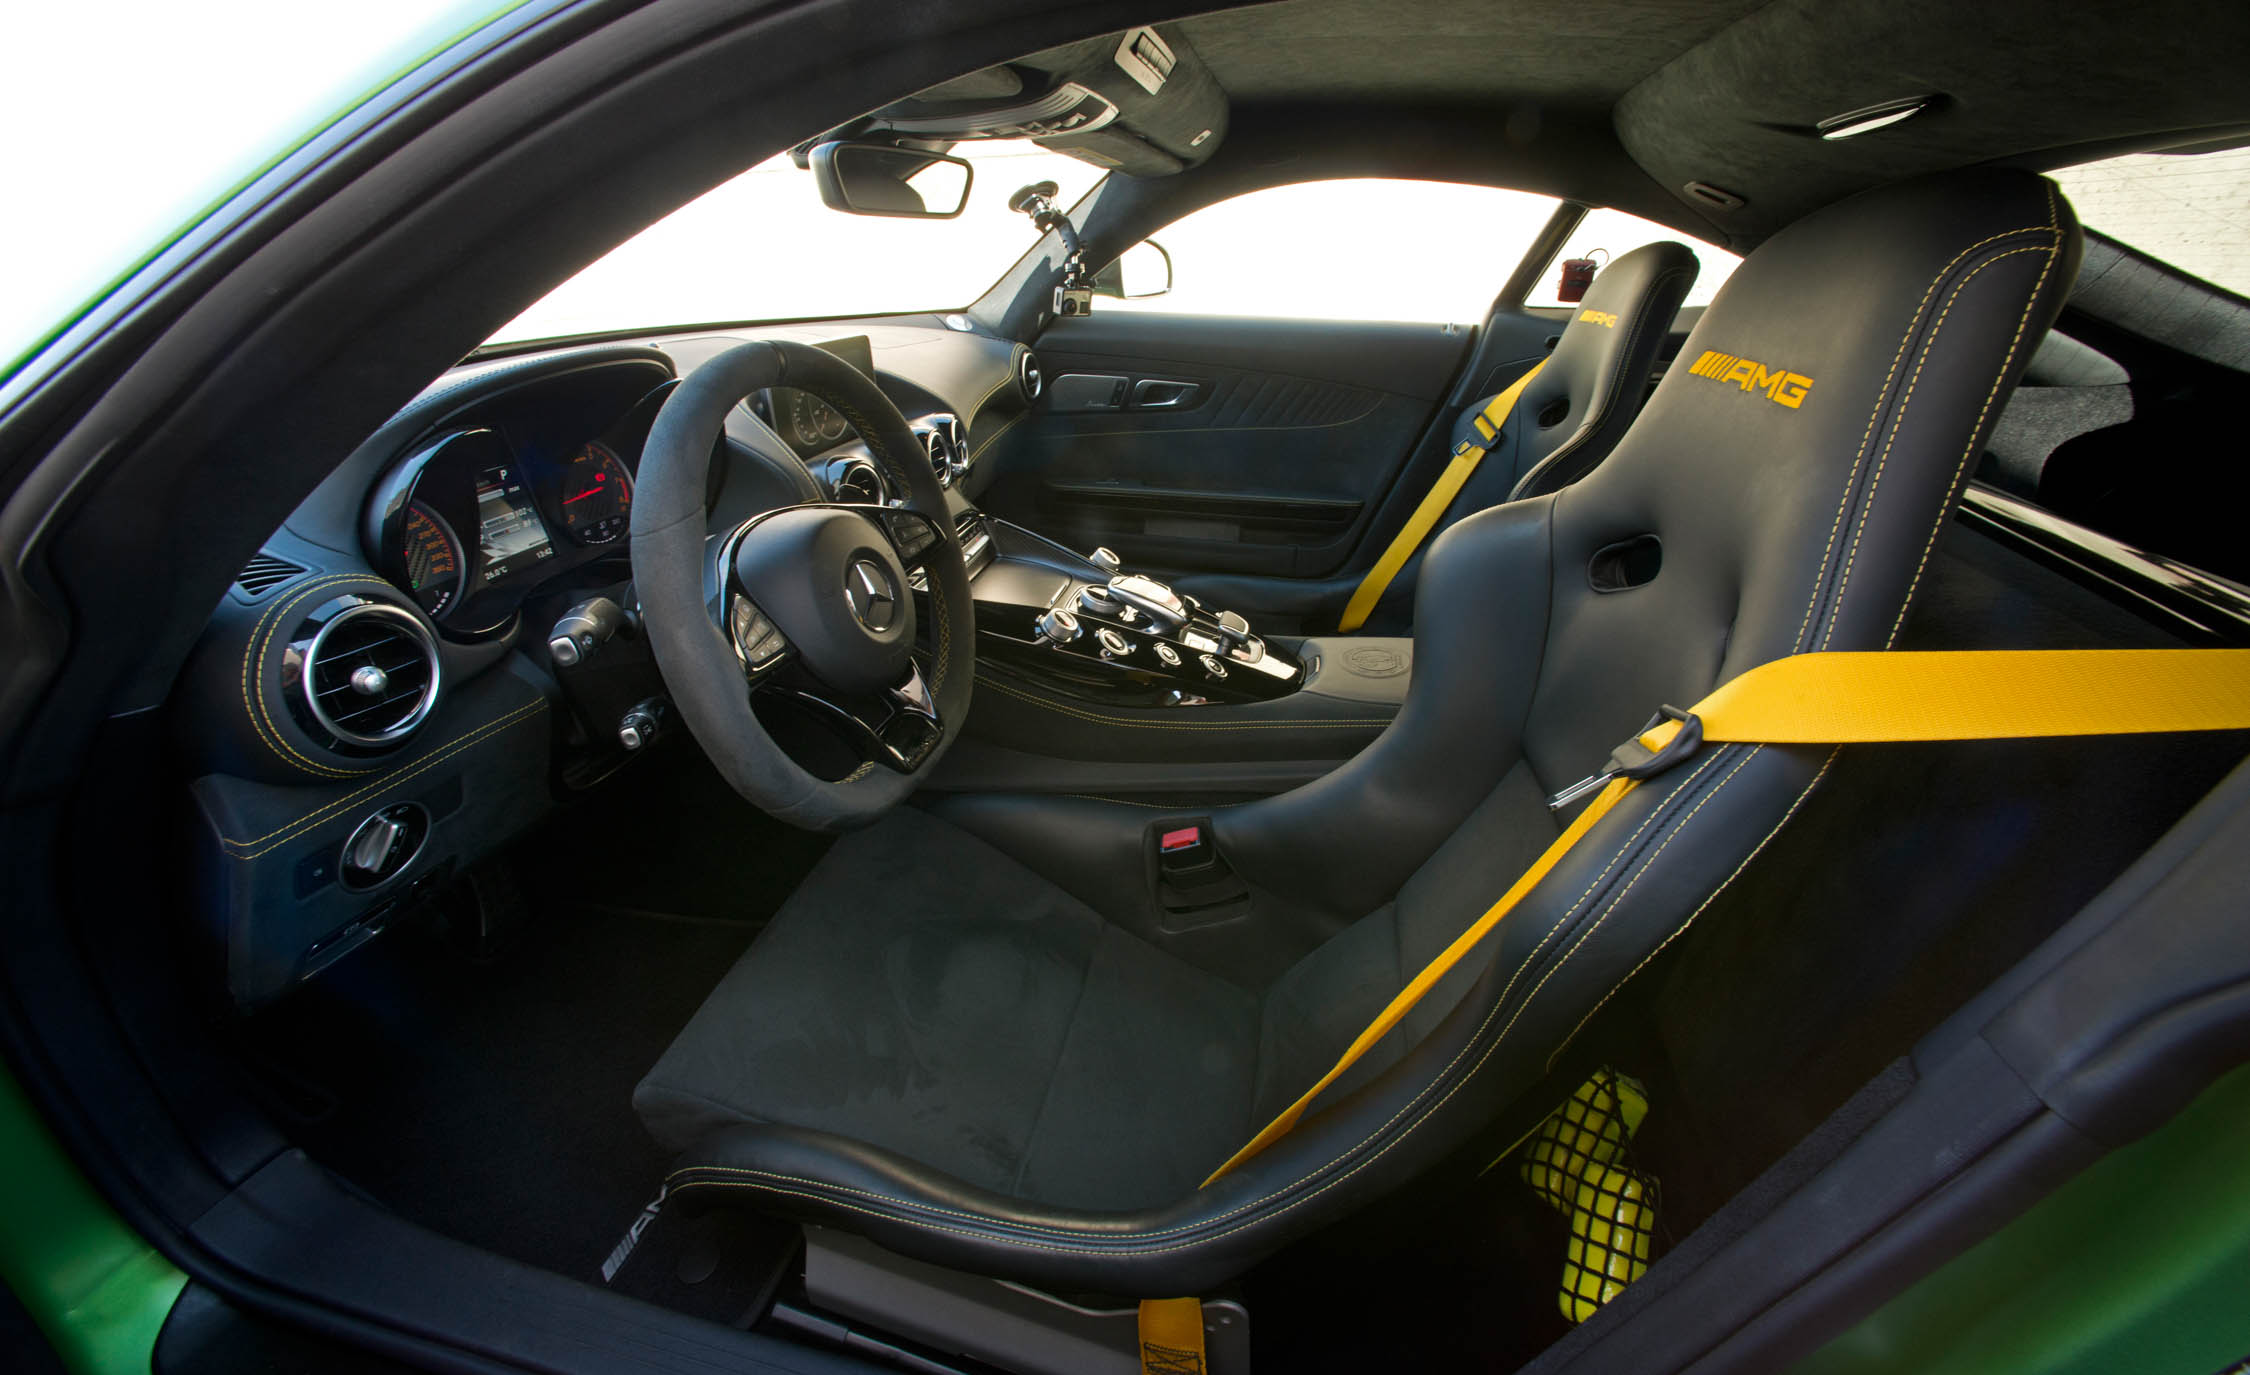 2017 Mercedes Amg Gt R Interior Seats (View 10 of 22)